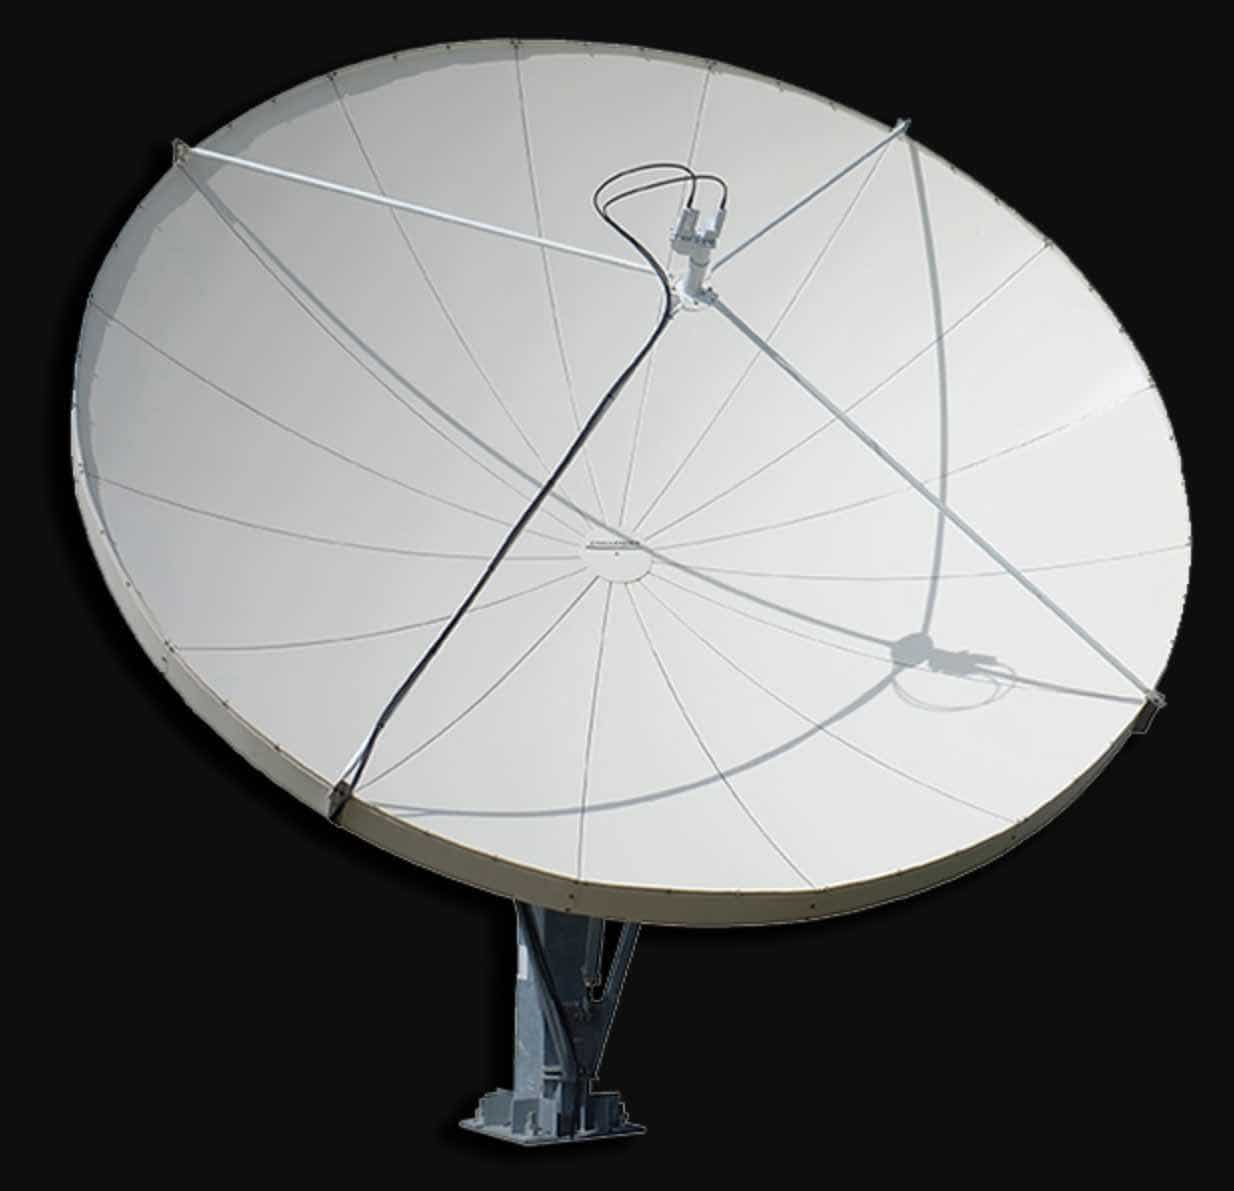 Pictures of Popular Satellite Dishes and LNBfs Used In